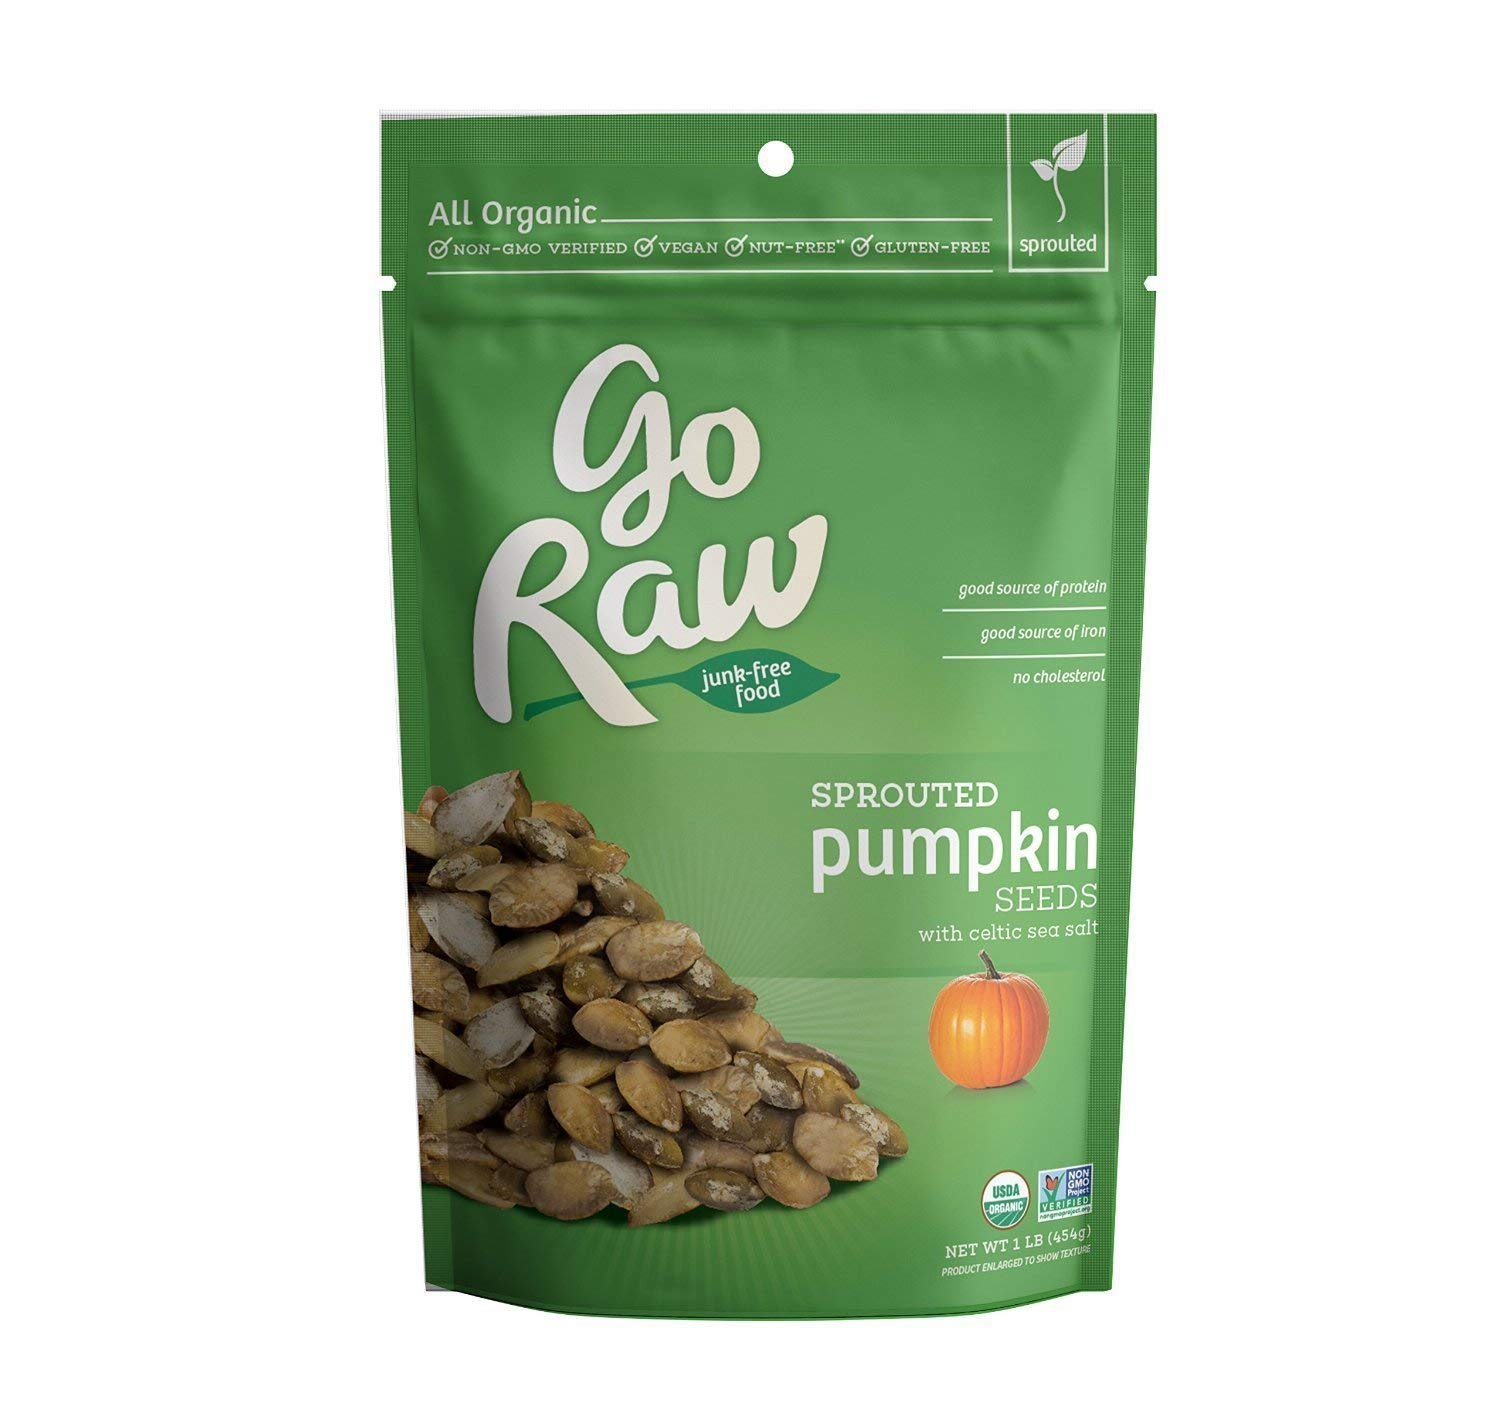 Go Raw Sprouted Pumpkin Seeds With Celtic Sea Salt   PLANT-BASED NUTRITION: 7g protein per serving, an excellent source of antioxidants, micronutrients such as Magnesium, Zinc, Copper, Manganese, and Phosphorus, and a good source of Iron.  PERFECT SNACK FOOD: a tasty alternative to nuts for plant-based protein and energy; great in trail mixes, as an on-the-go snack, and eaten right out of the bag.  SIMPLE ORGANIC INGREDIENTS: made with only 2 simple ingredients; also non-GMO, gluten-free, nut-free, dairy-free, soy-free, vegan, and kosher.  MINIMALLY-PROCESSED: seeds are sprouted and gently dried—never roasted or fried—which gives them a light, crunchy texture and great-tasting flavor.